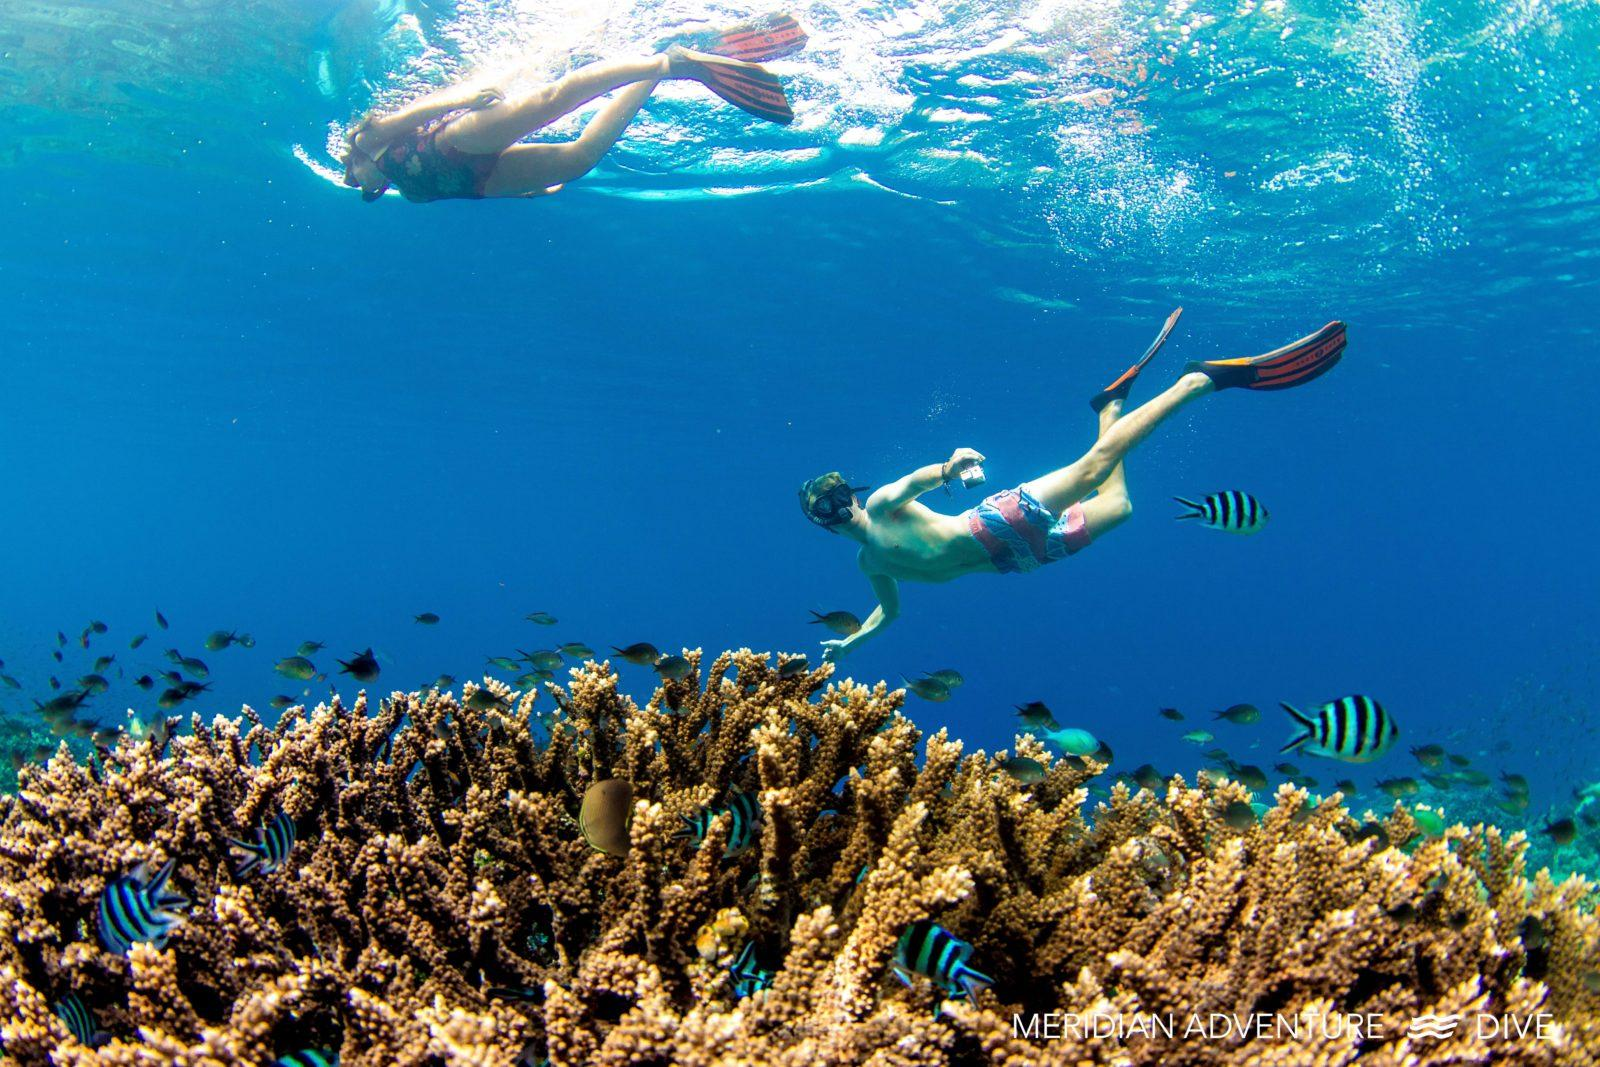 Discover pristine coral reefs when you go diving In Raja Ampat